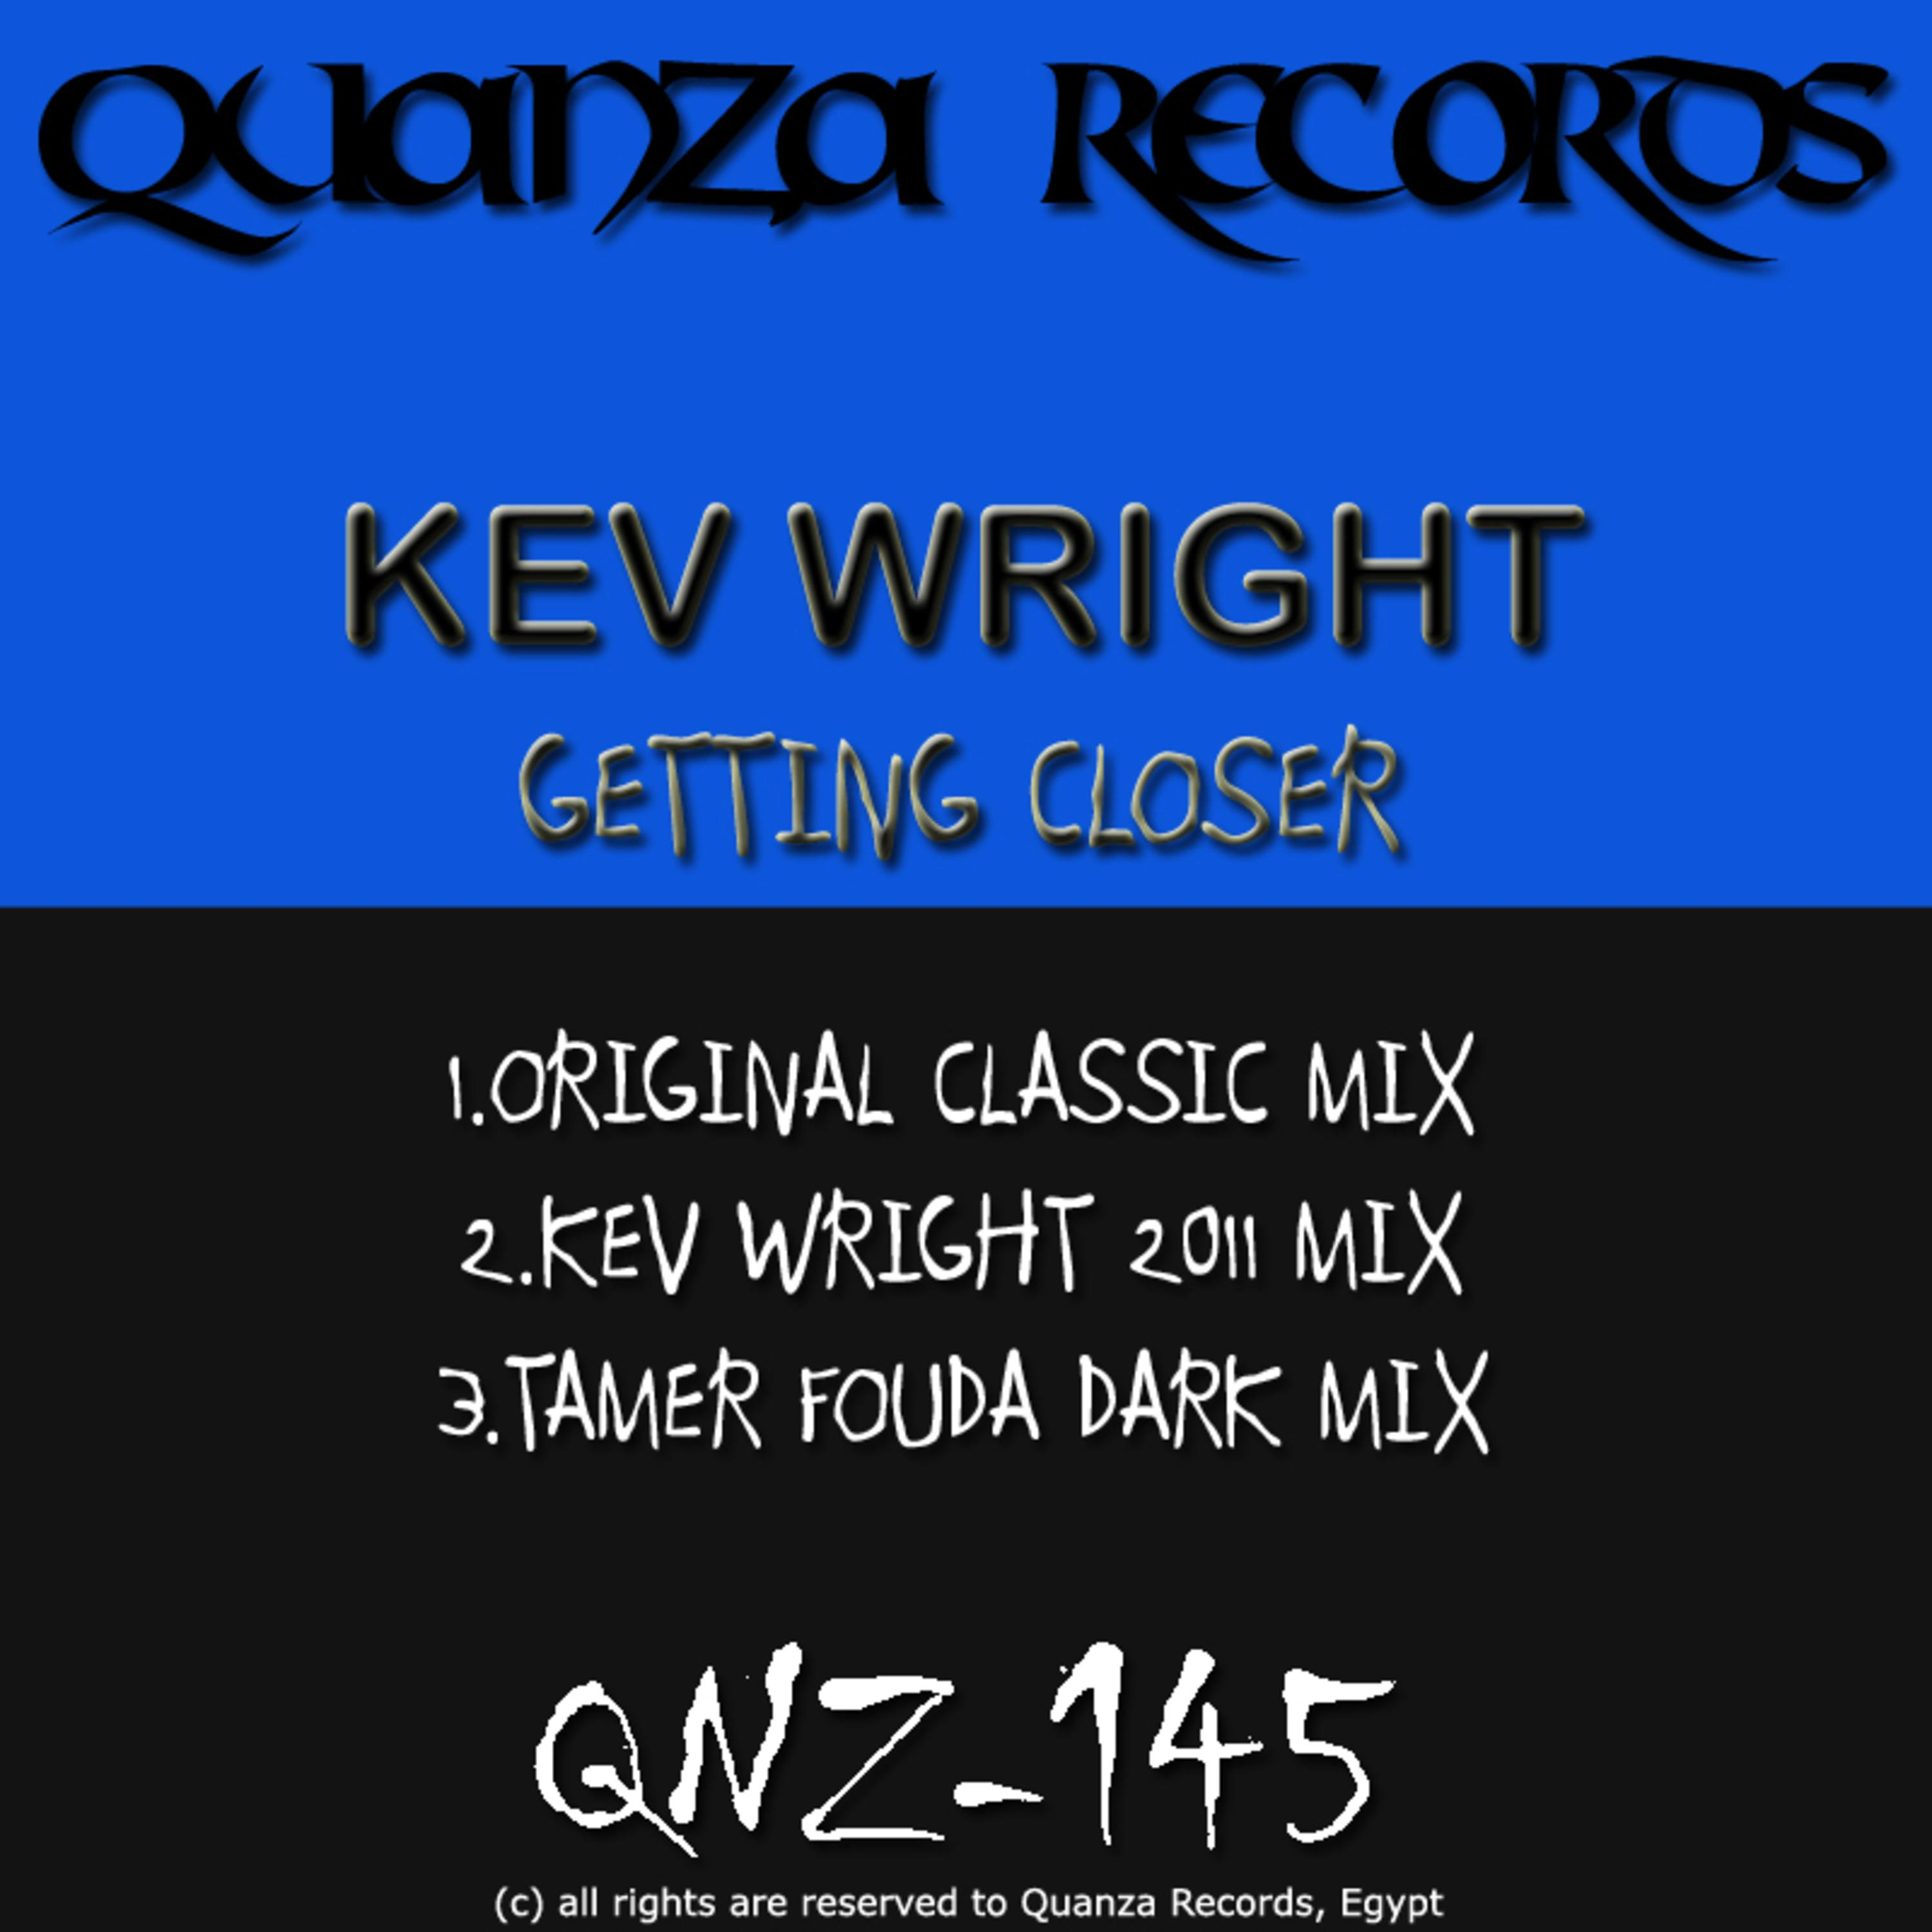 Kev Wright - Getting Closer (Kev Wright 2011 Remix)